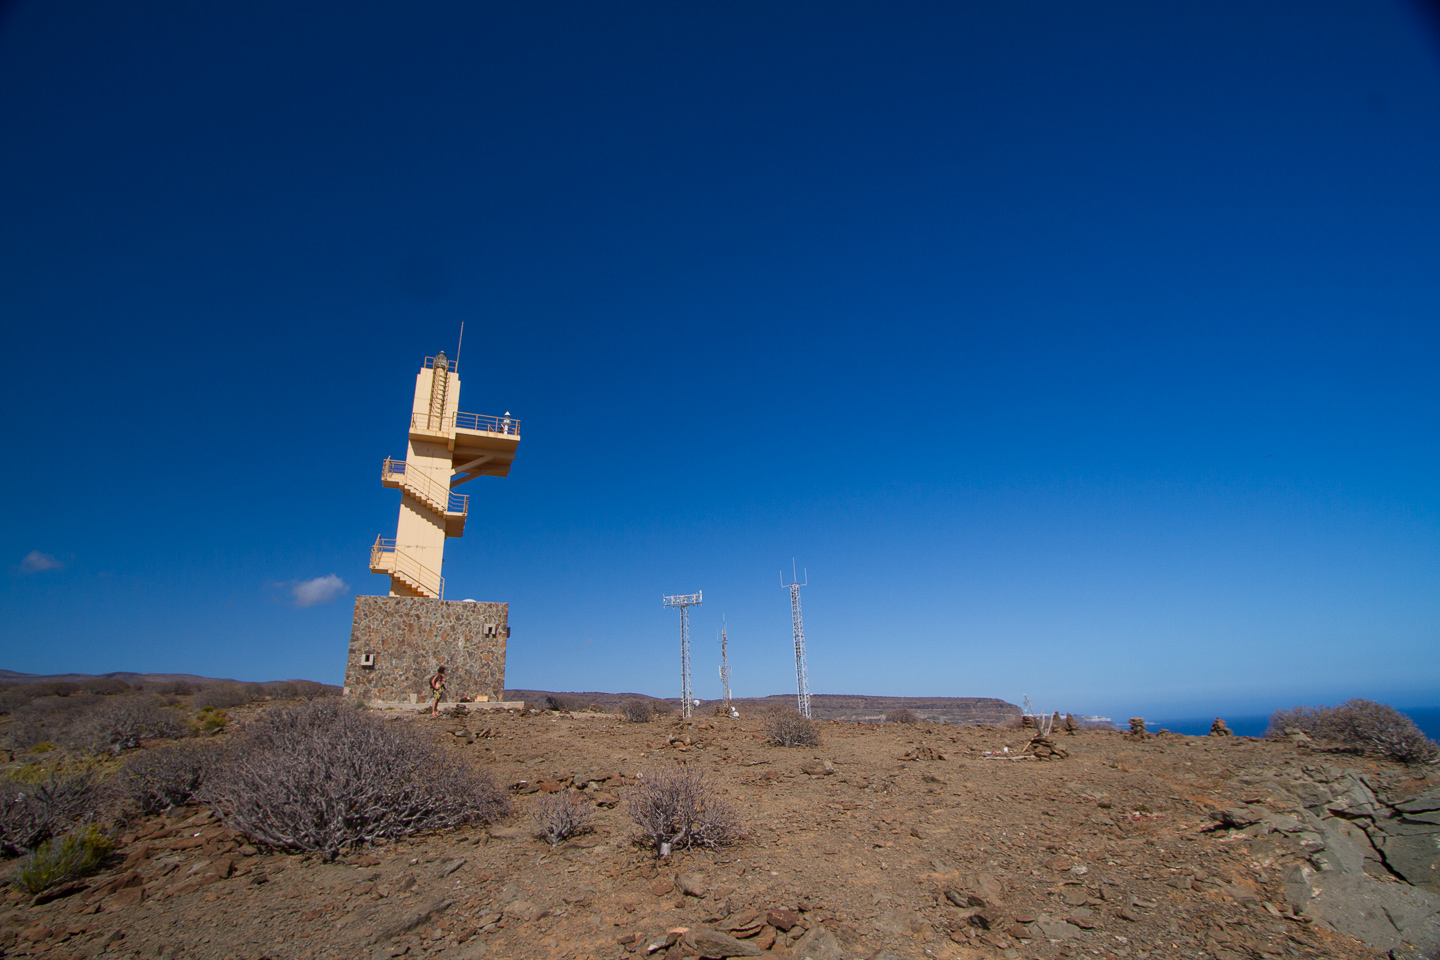 Puta del Castillete lighthouse at Puerto de Mogan in south Gran Canaria